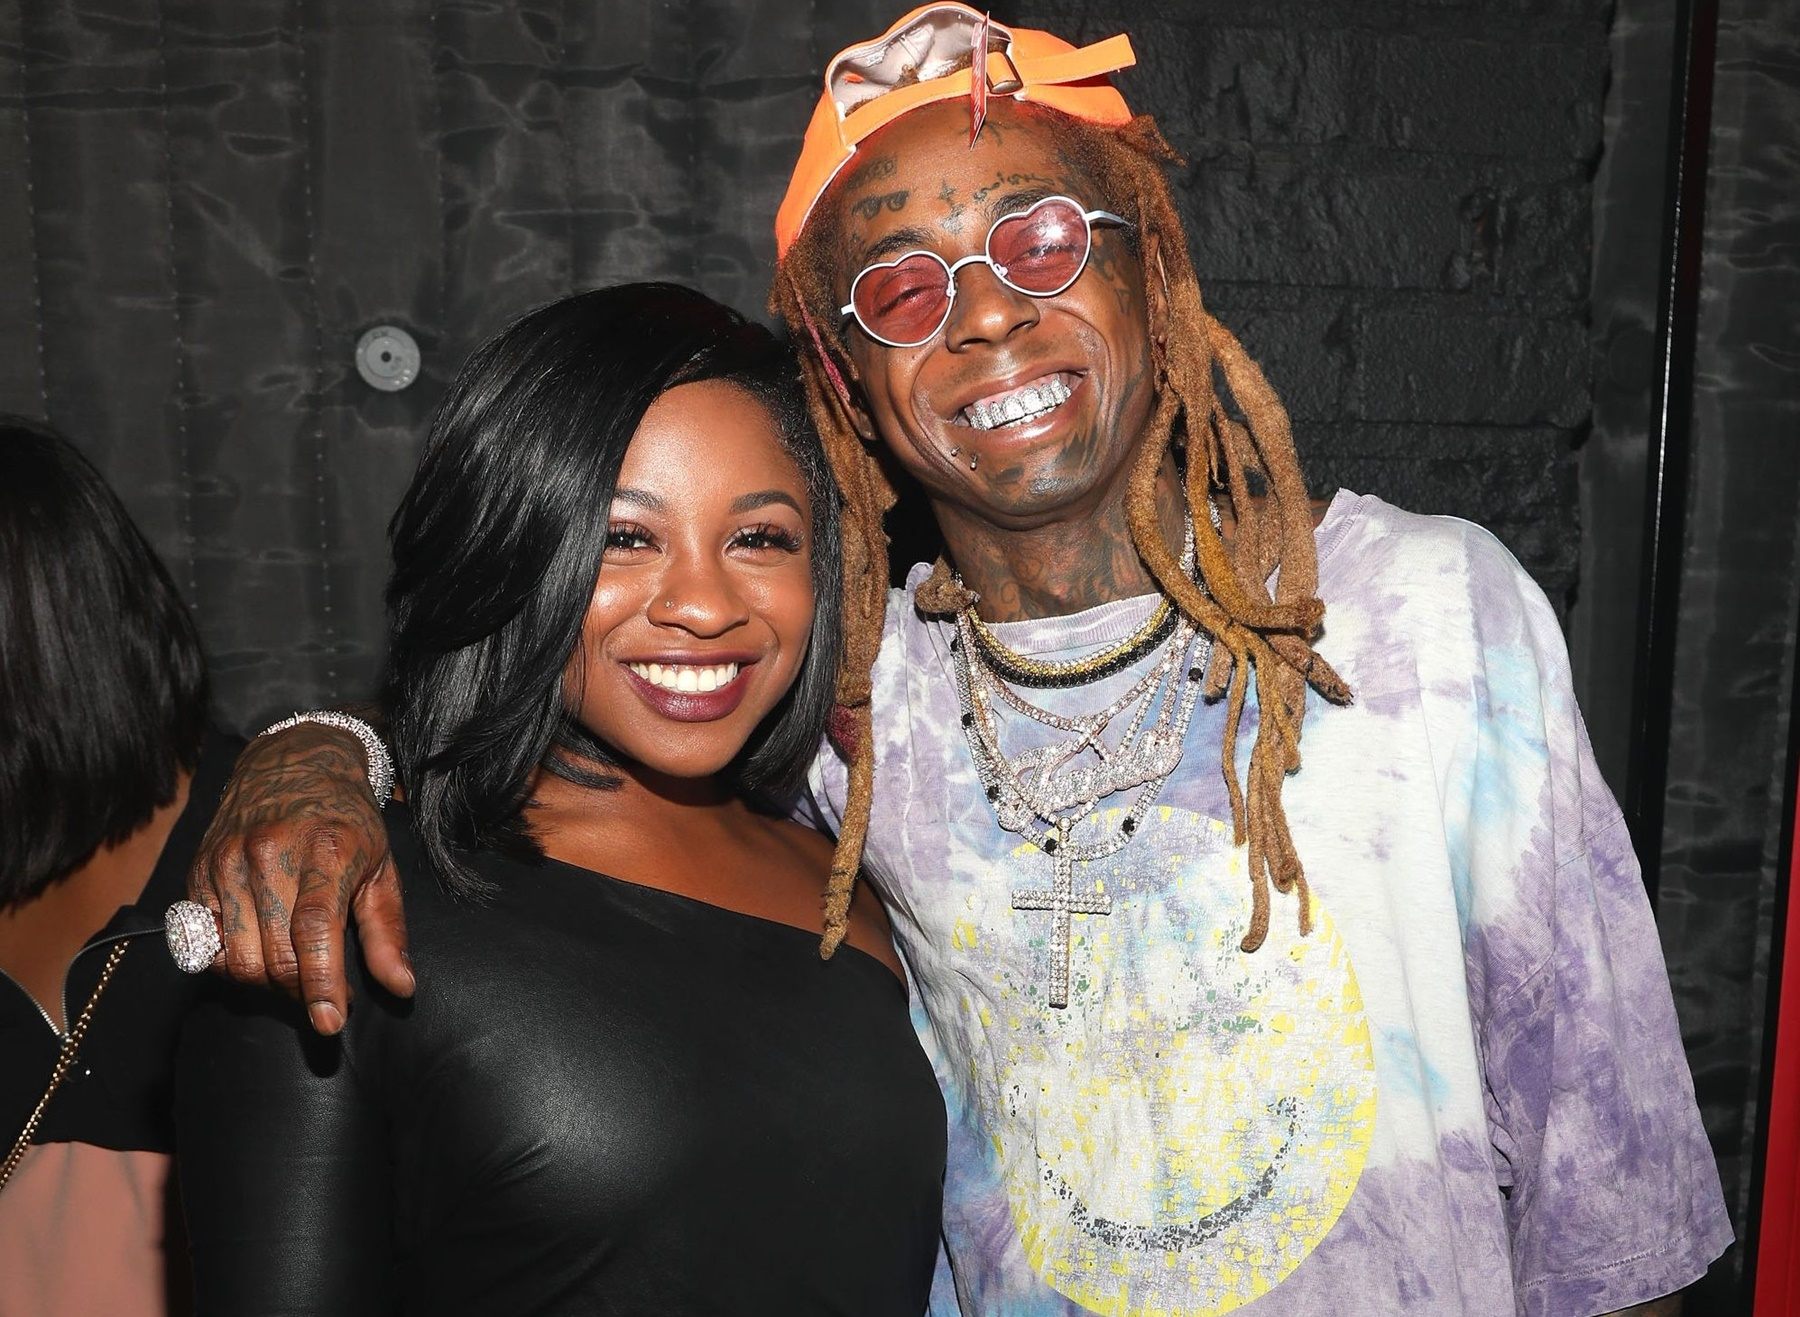 lil-waynes-daughter-reginae-carter-raps-one-of-his-songs-like-she-wrote-it-in-new-video-is-she-sending-yfn-lucci-a-message-about-hurting-her